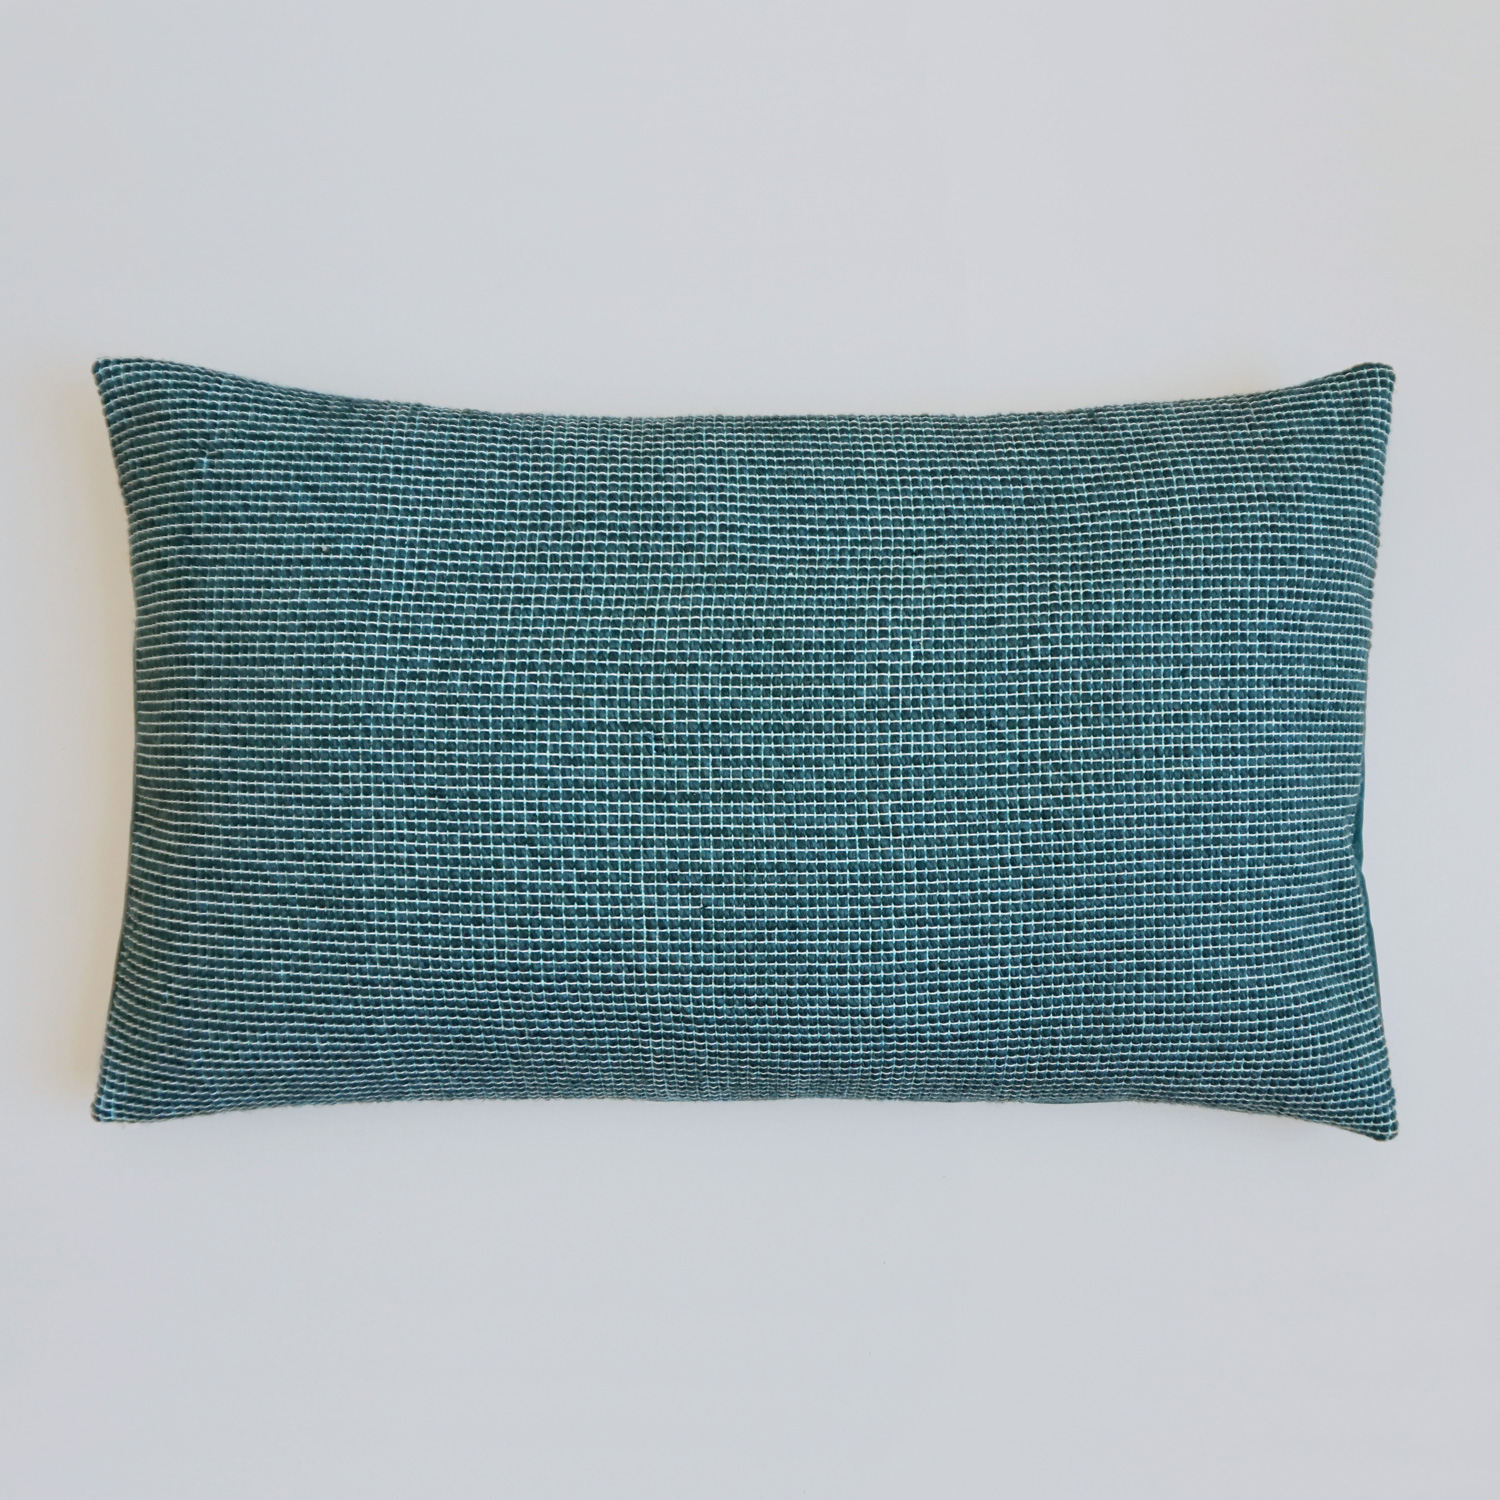 An extra large and extra soft deep green woven pillow, filled with a zero waste scrap insert.